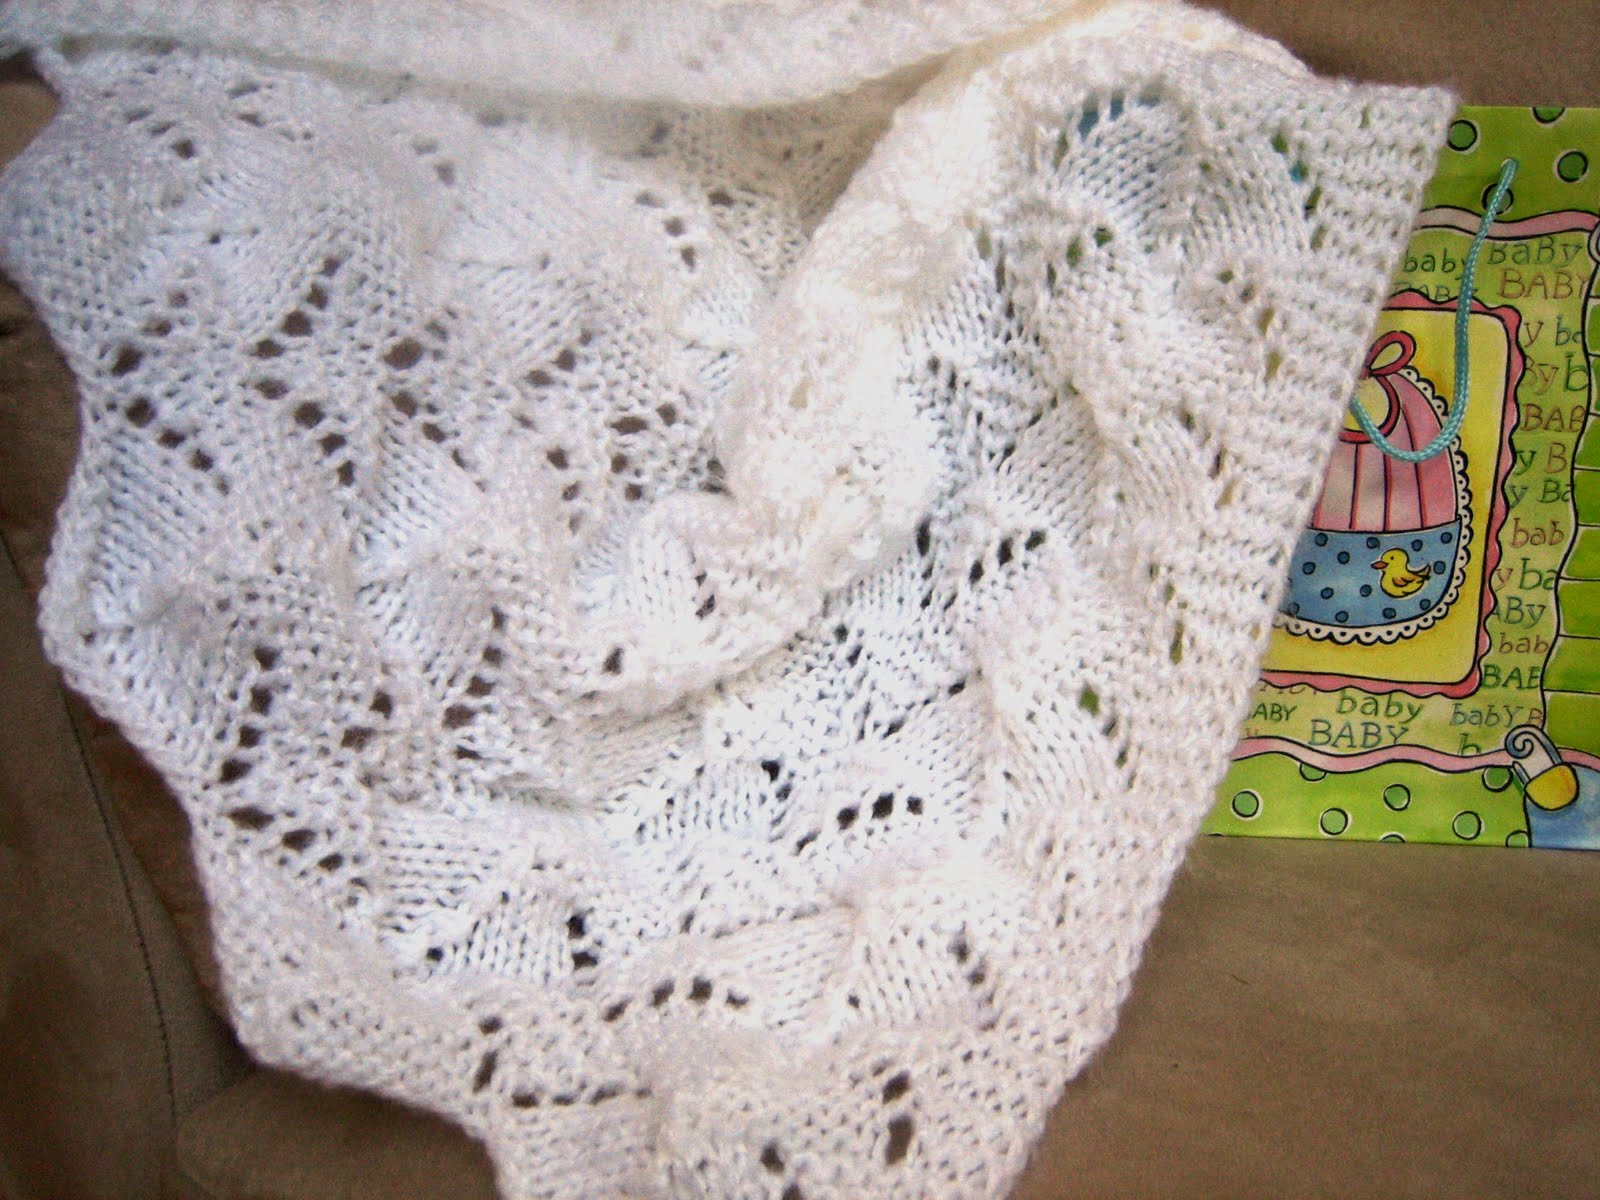 Easy Knitting Patterns For Baby Blankets For Beginners : Beginner baby blanket patterns « free